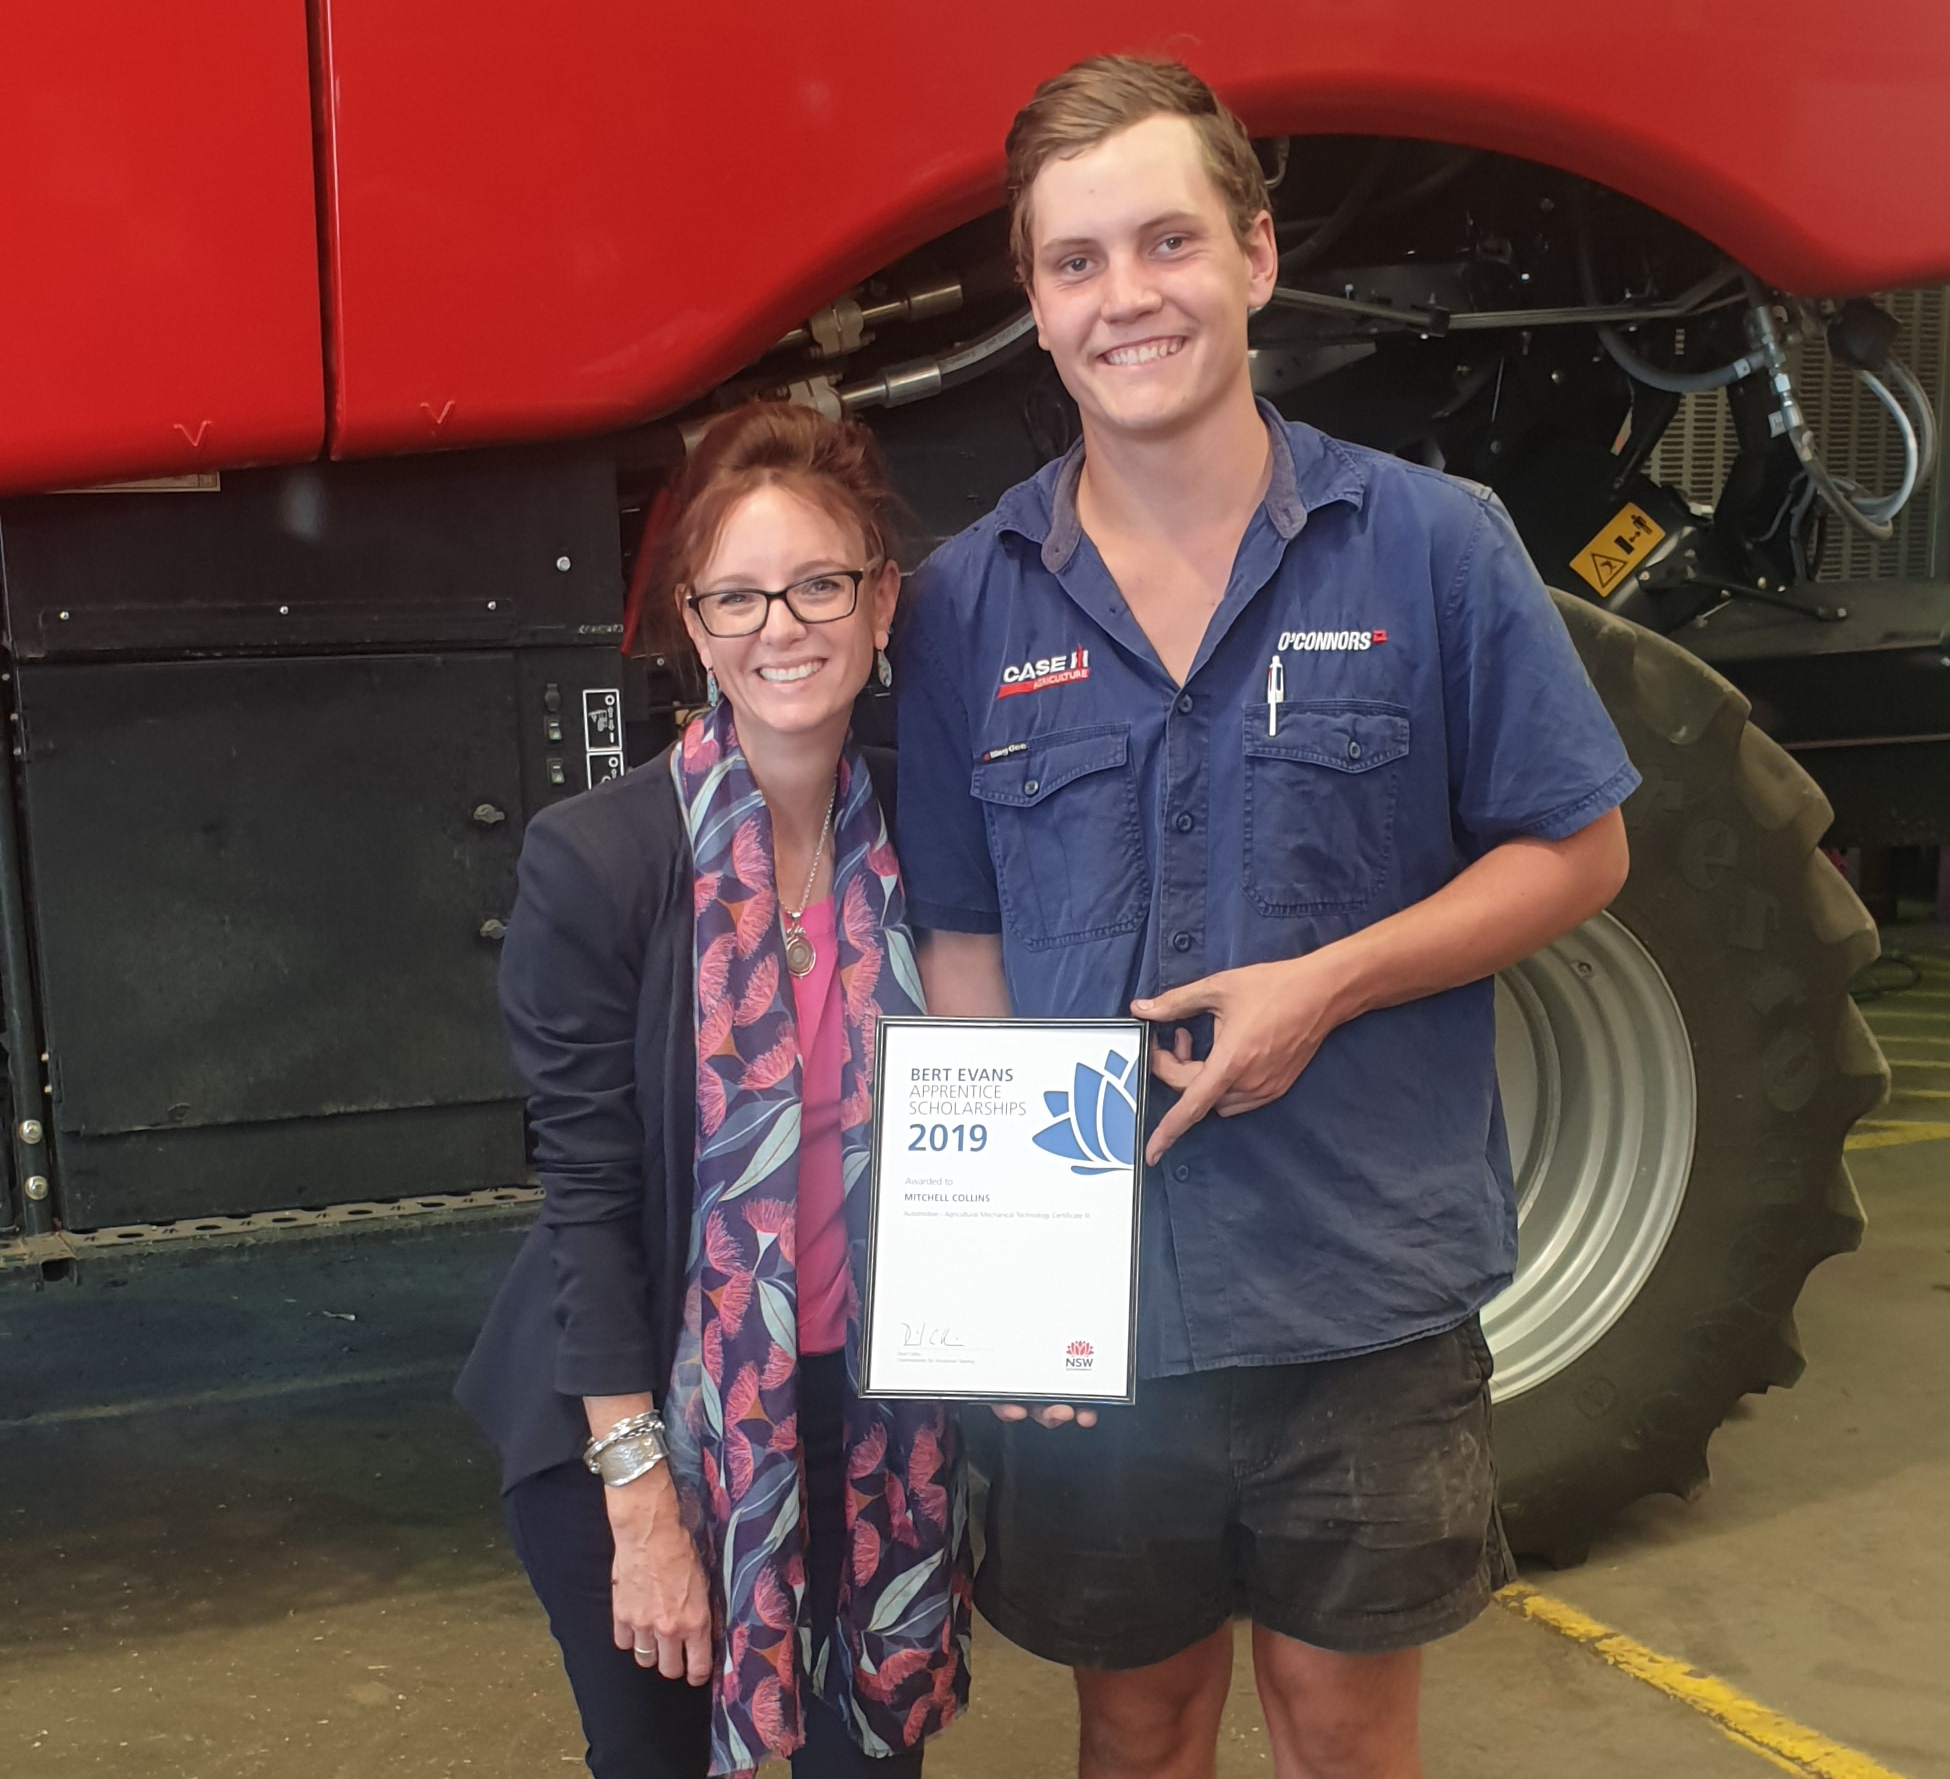 Steph Cooke and Mitchell Collins stand close together and smile at the camera. Mitchell holds his scholarship certificate. They stand in front of a large red header.